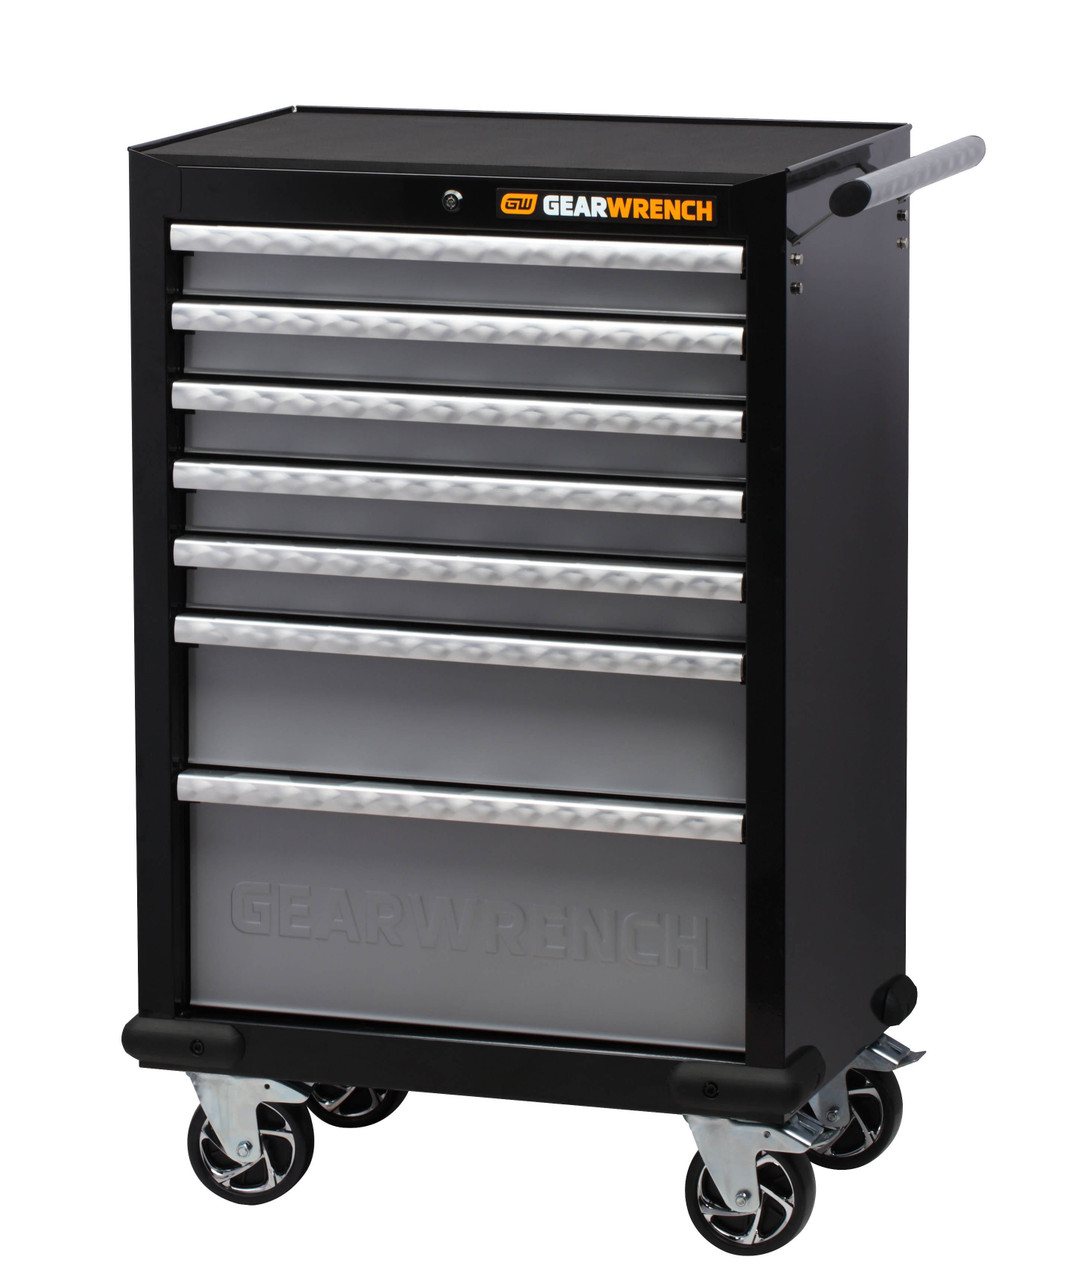 """Gearwrench 496 Pc Combination Tool Kit + 26"""" Tool Chest & Trolley"""